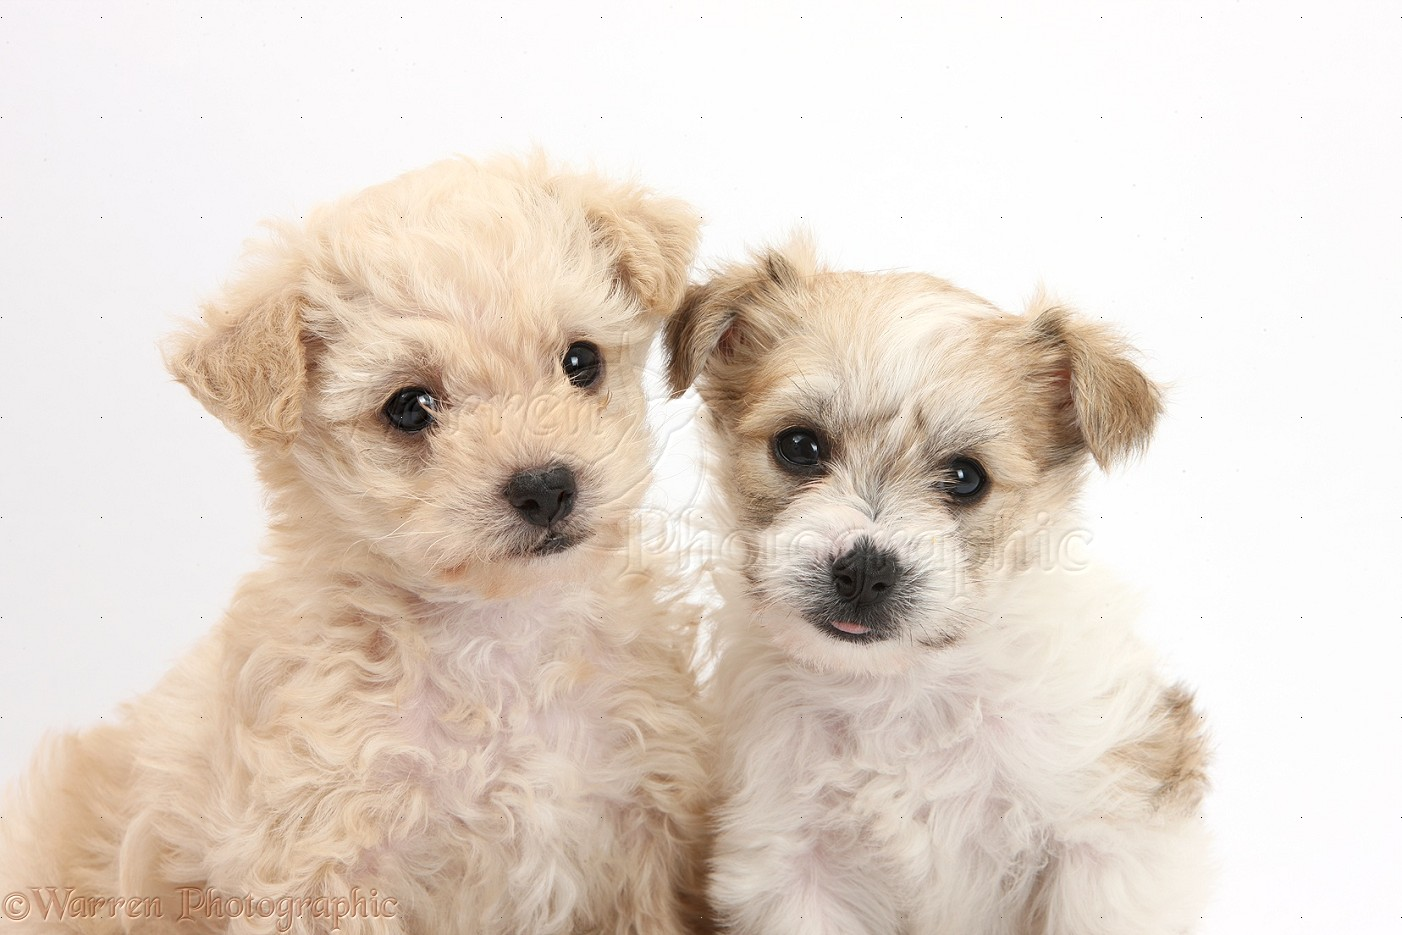 WP35531 Bichon Frisé x Yorkshire Terrier pups, 6 weeks old.